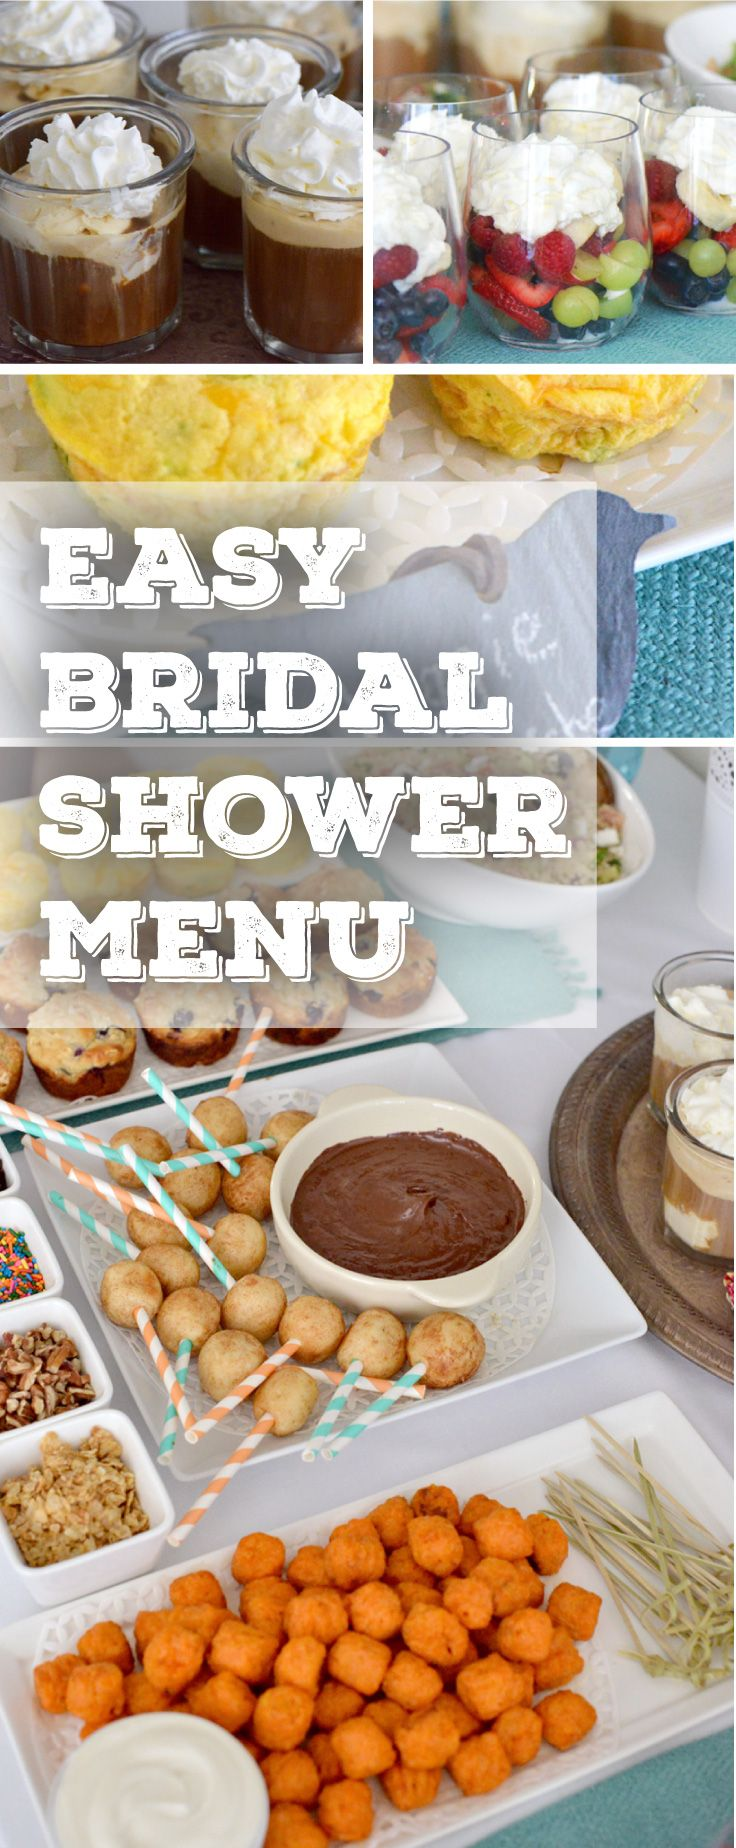 everything you need to plan the perfect bridal shower on a budget more